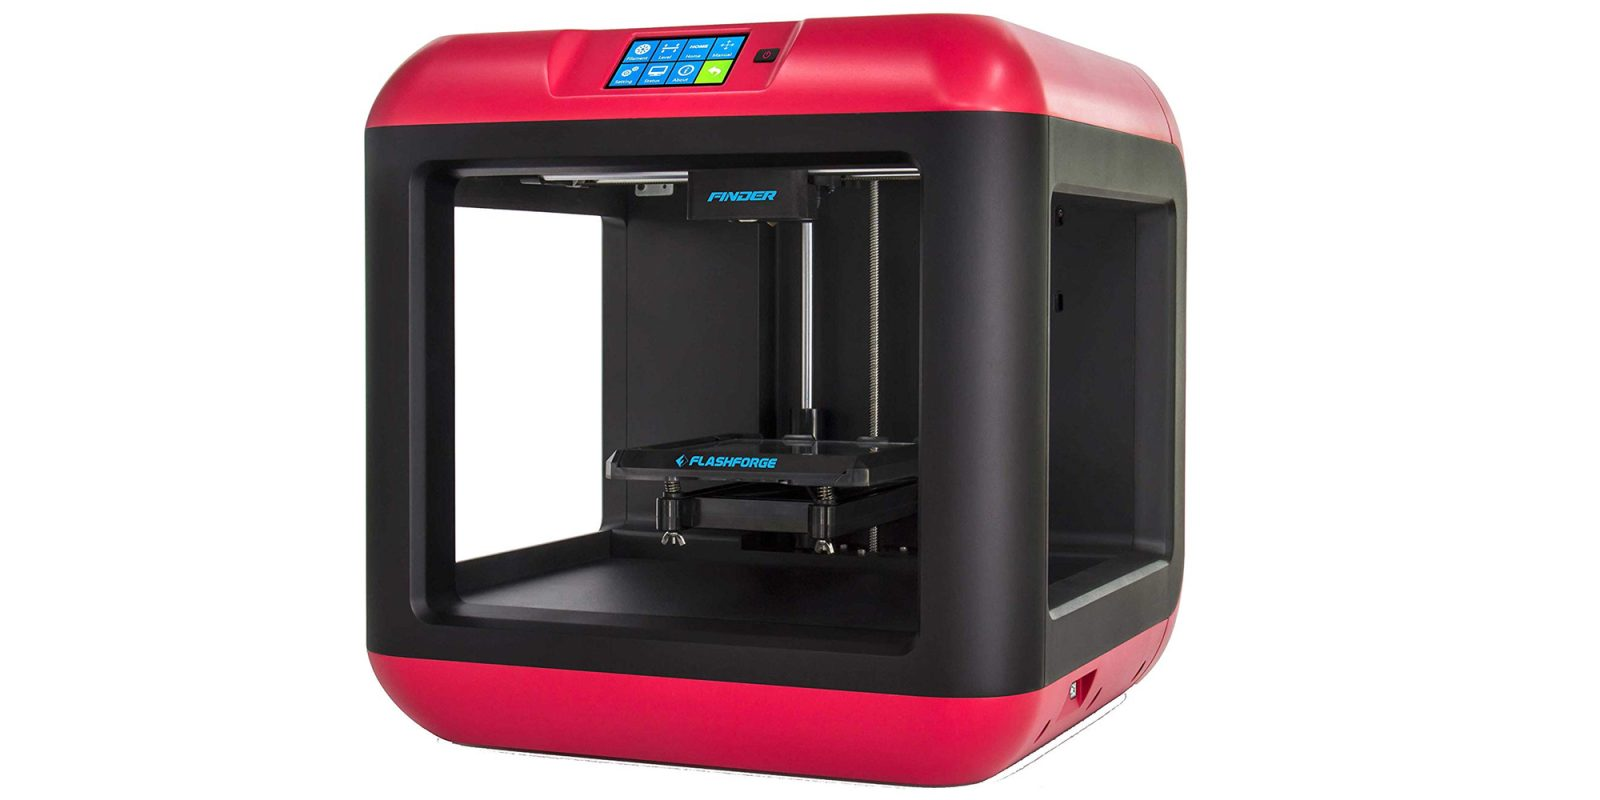 FlashForge's Finder 3D Printer has Wi-Fi control & more at new low of $299 ($100 off)